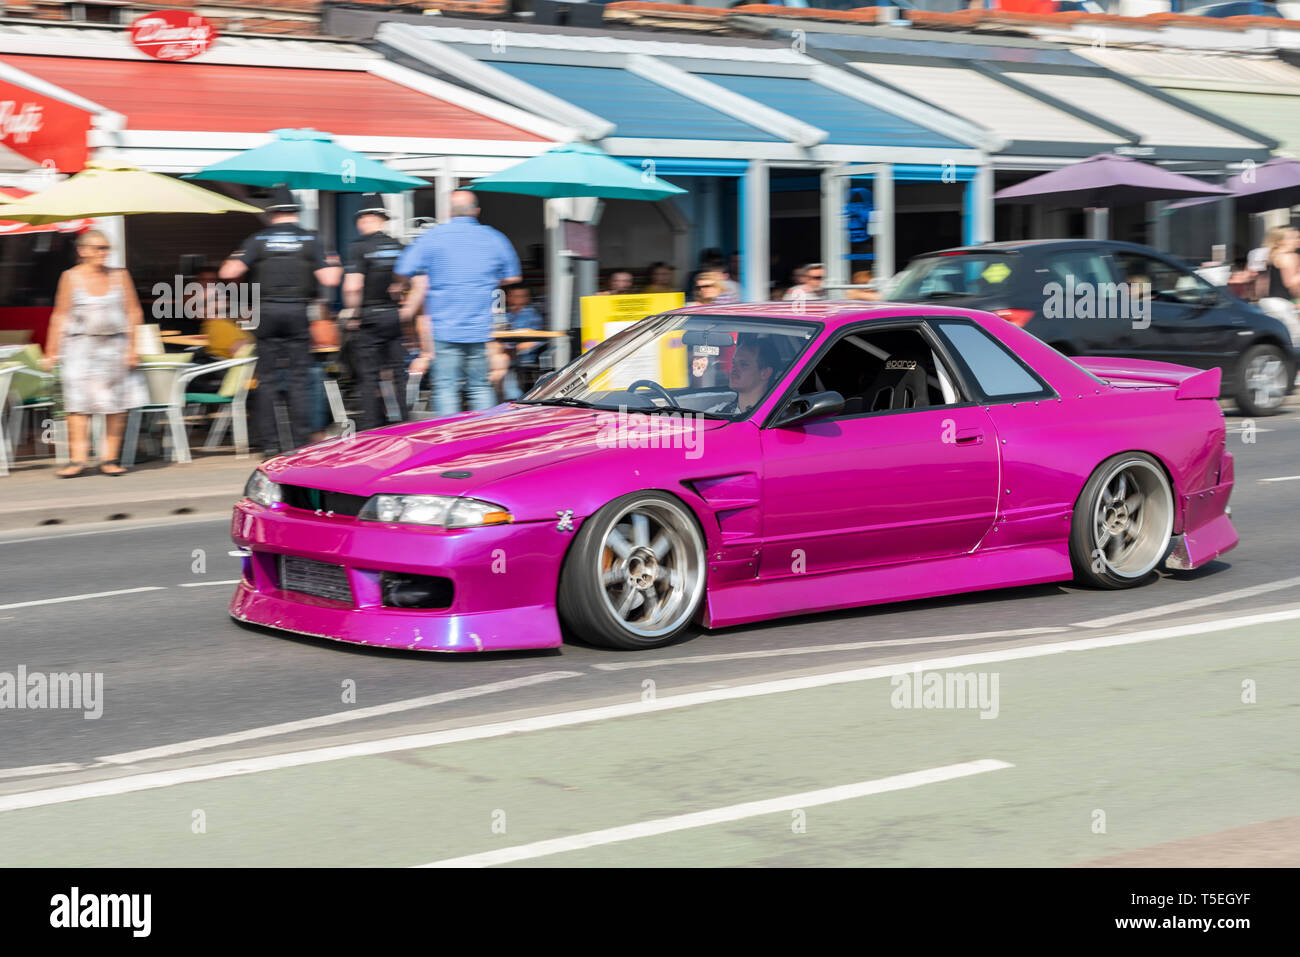 magenta-custom-car-driving-past-arches-restaurants-along-western-esplanade-southend-on-sea-essex-uk-lowered-modified-nissan-silvia-vehicle-T5EGYF.jpg